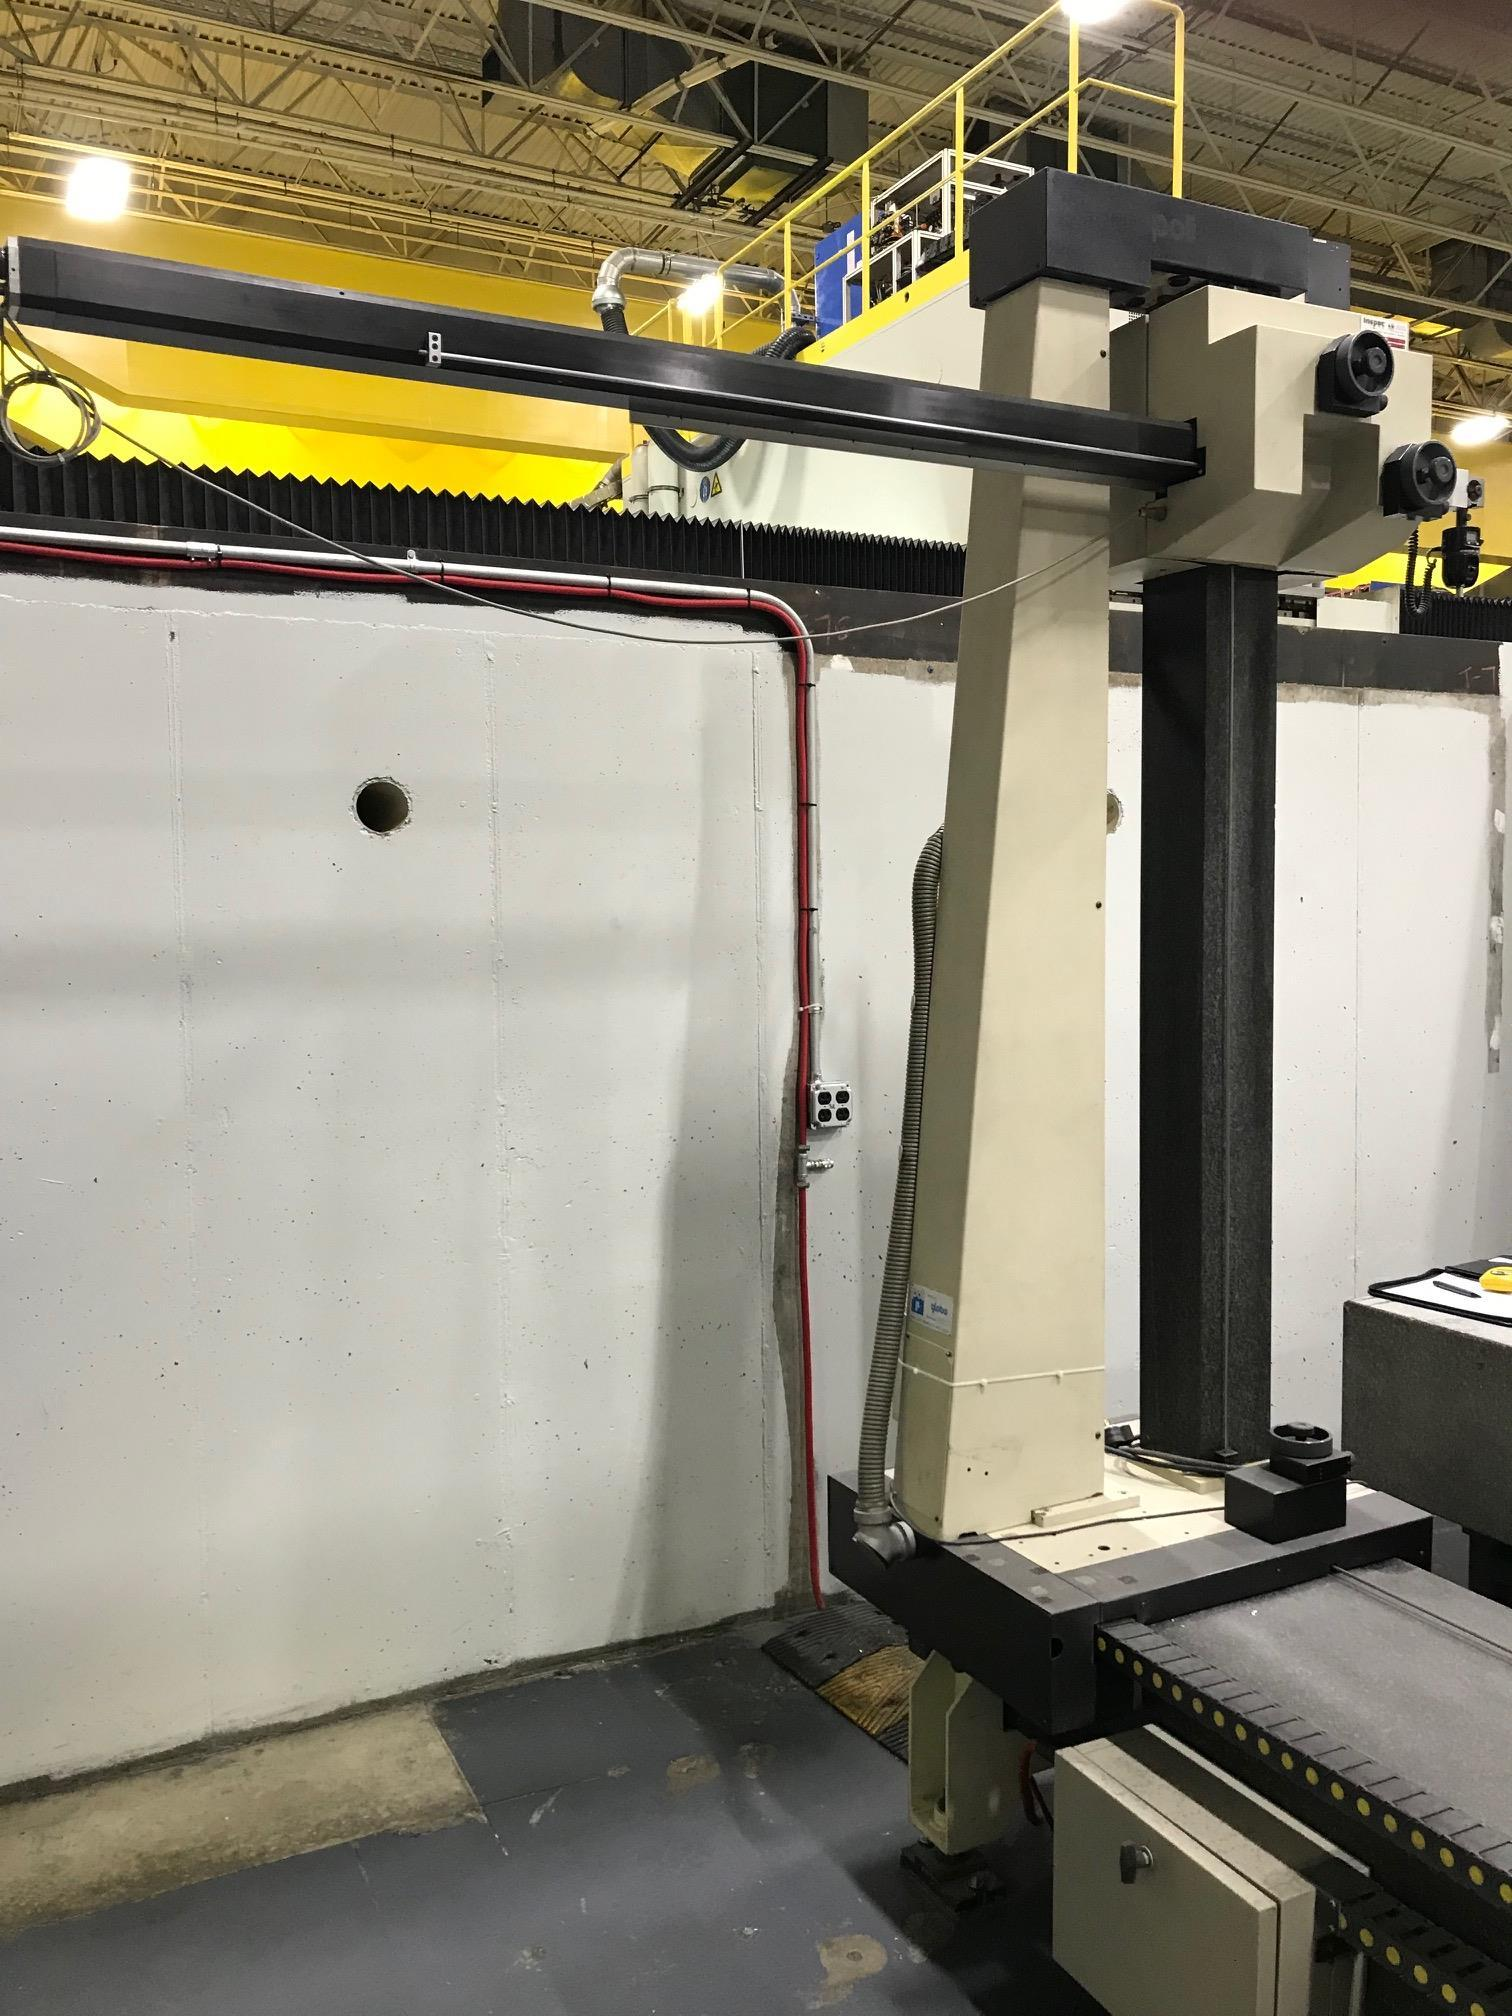 USED POLI GLOBO COORDINATE MEASURING MACHINE WITH 96